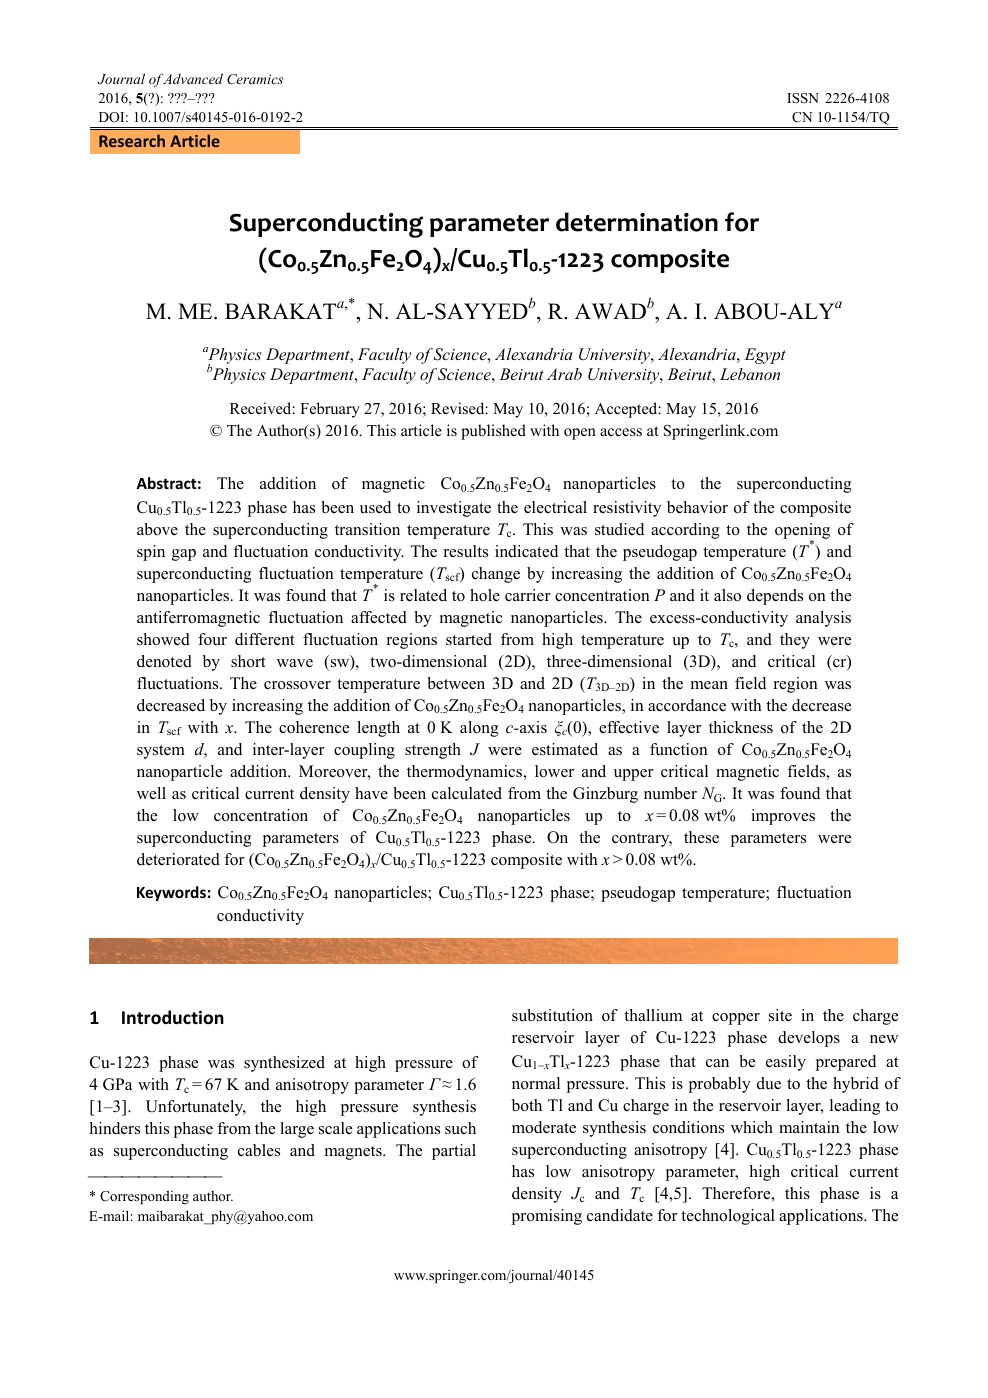 Superconducting parameter determination for (Co0 5Zn0 5Fe2O4